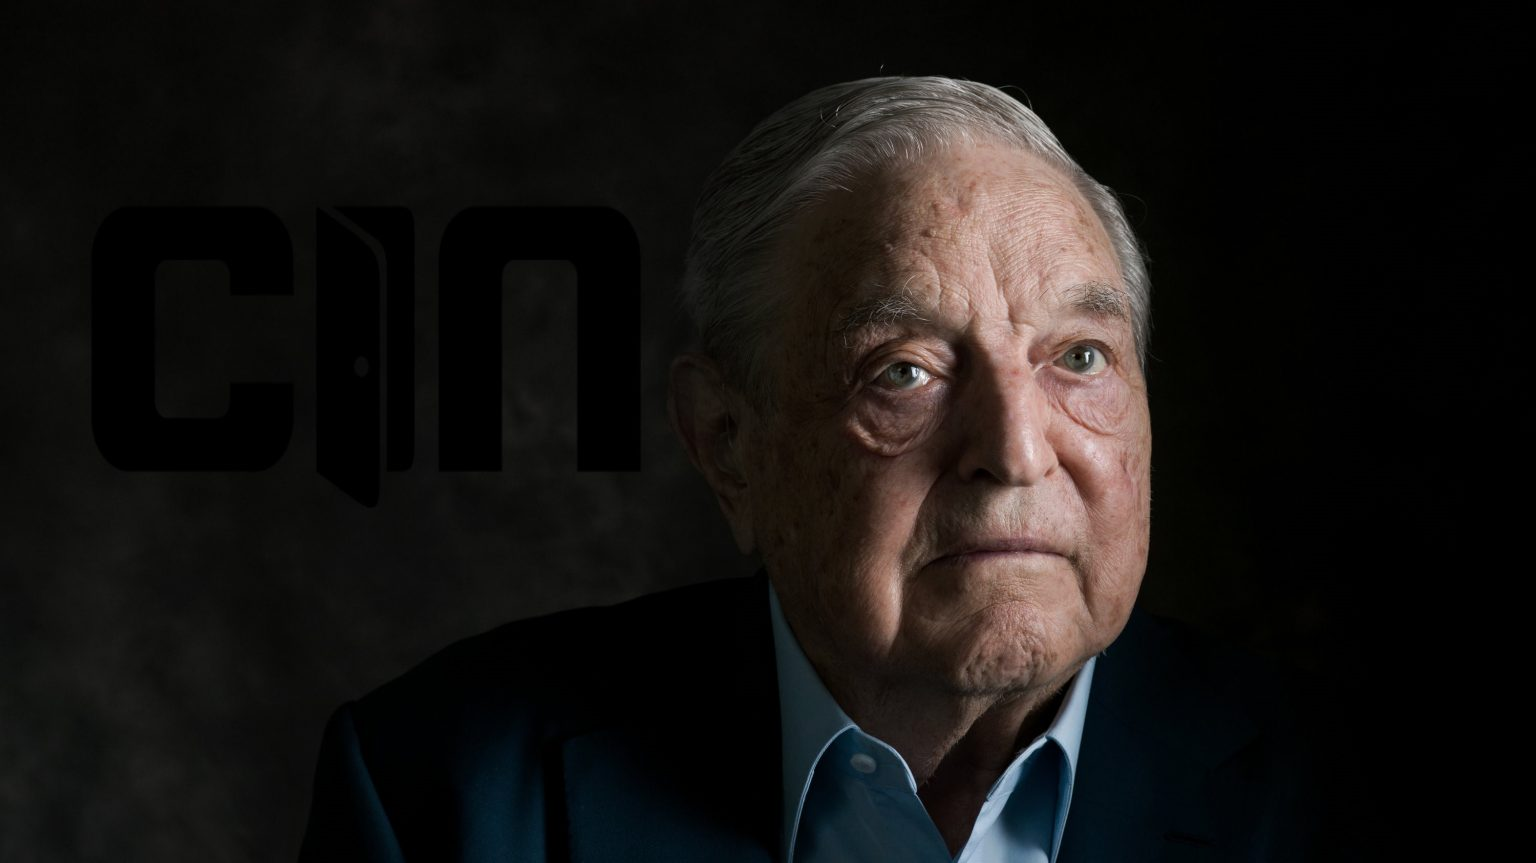 Soros' New World Order Tied to Drug Legalization Movement